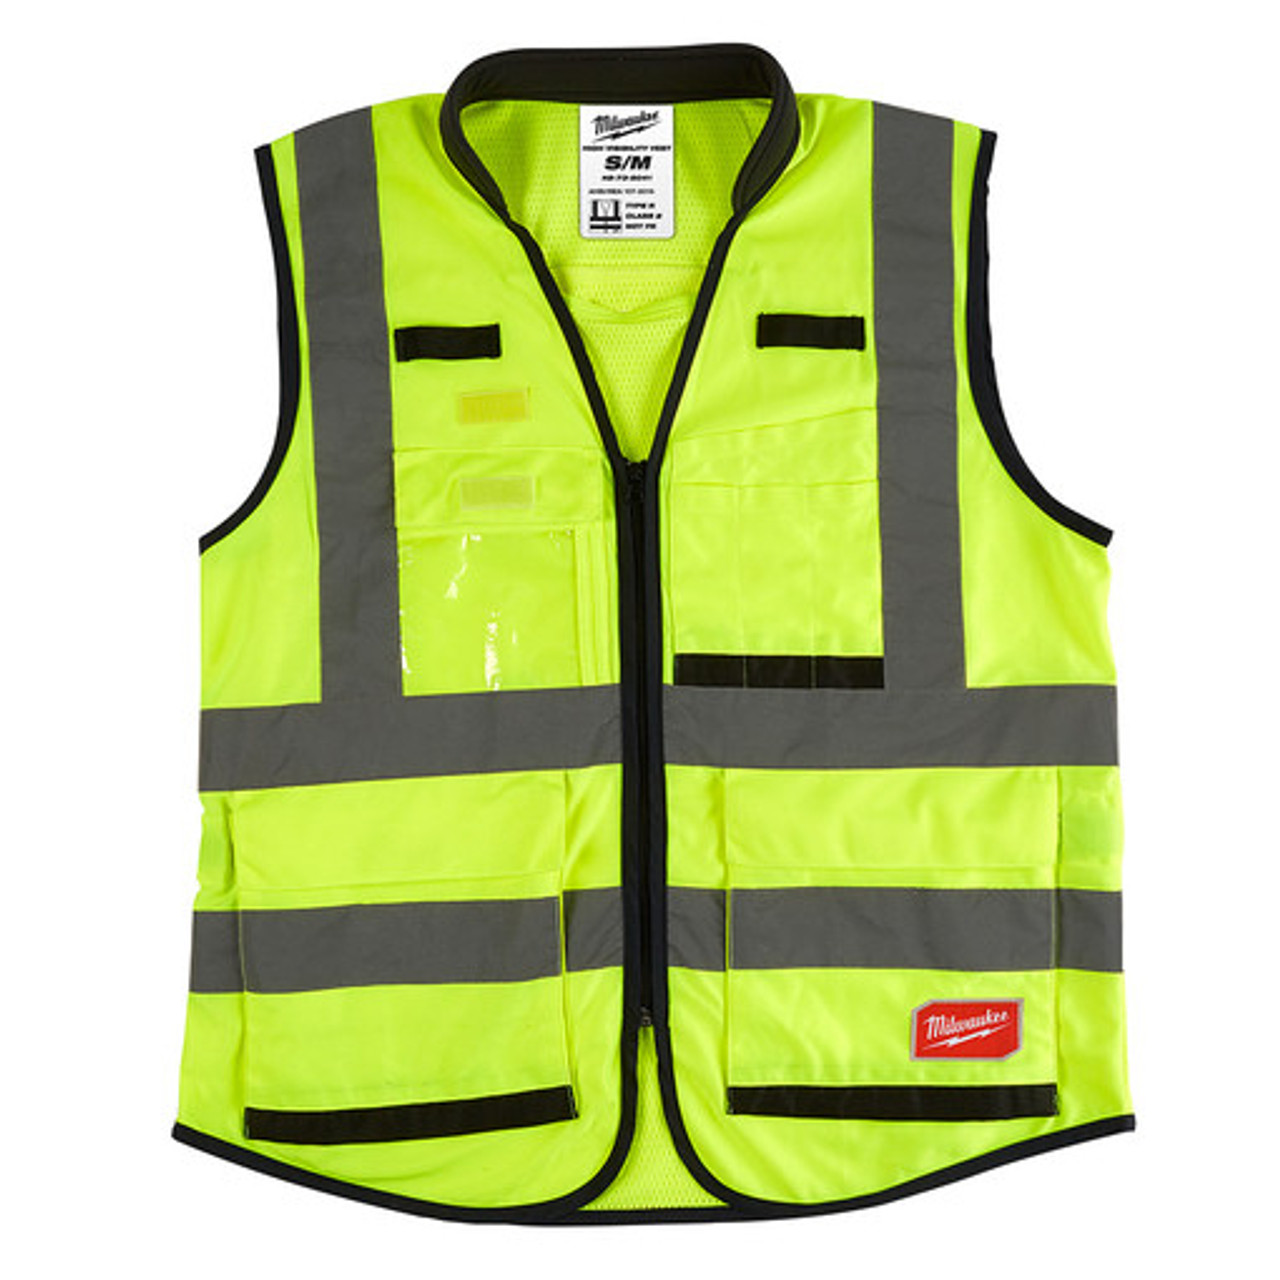 Milwaukee 48-73-5041 High Visibility Yellow Performance Safety Vest - S/M